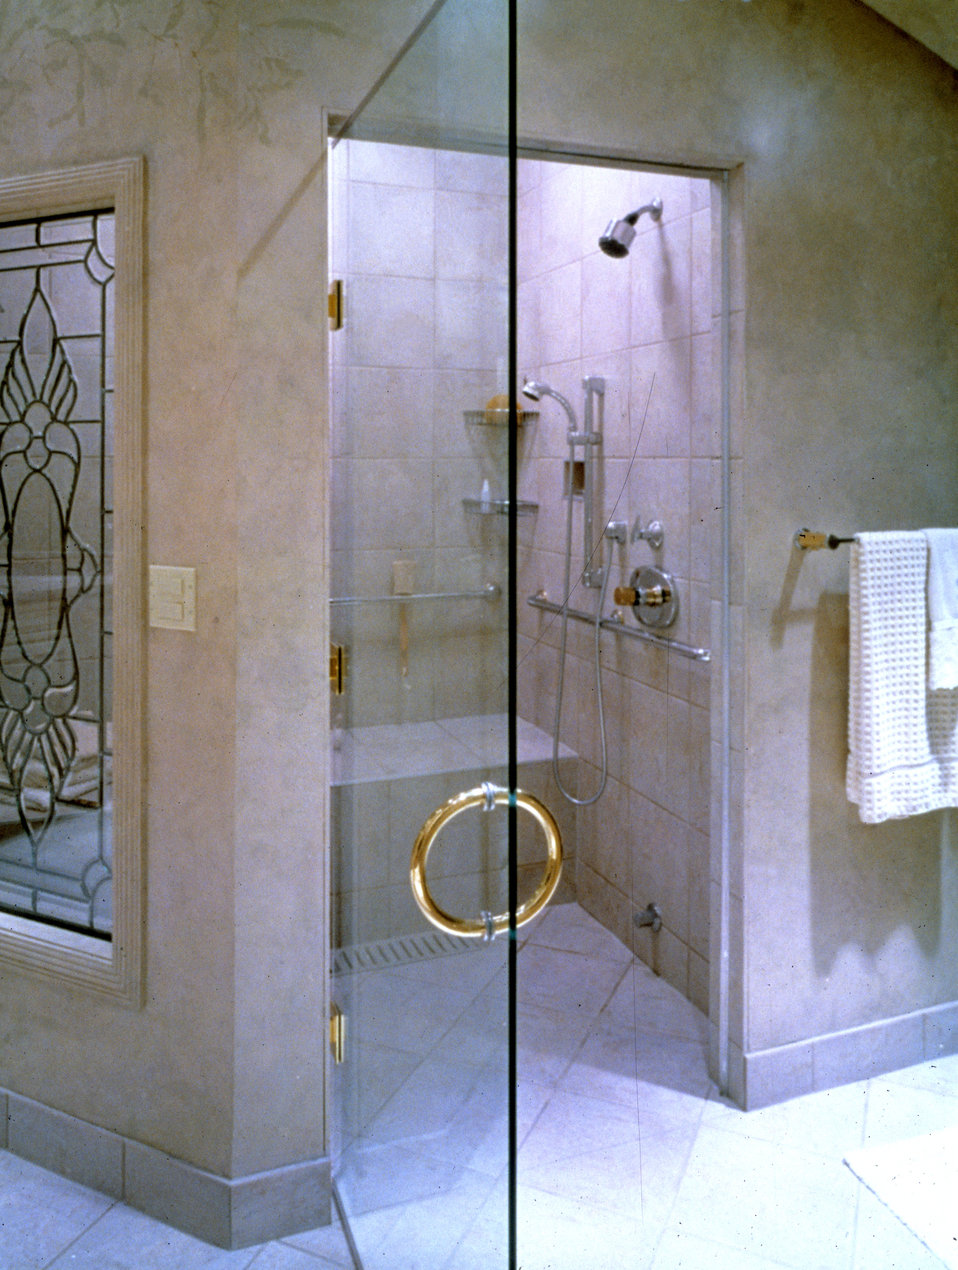 This image depicted an example of a shower door design where users who might be mobility impaired could possibly be amongst those who'd be u